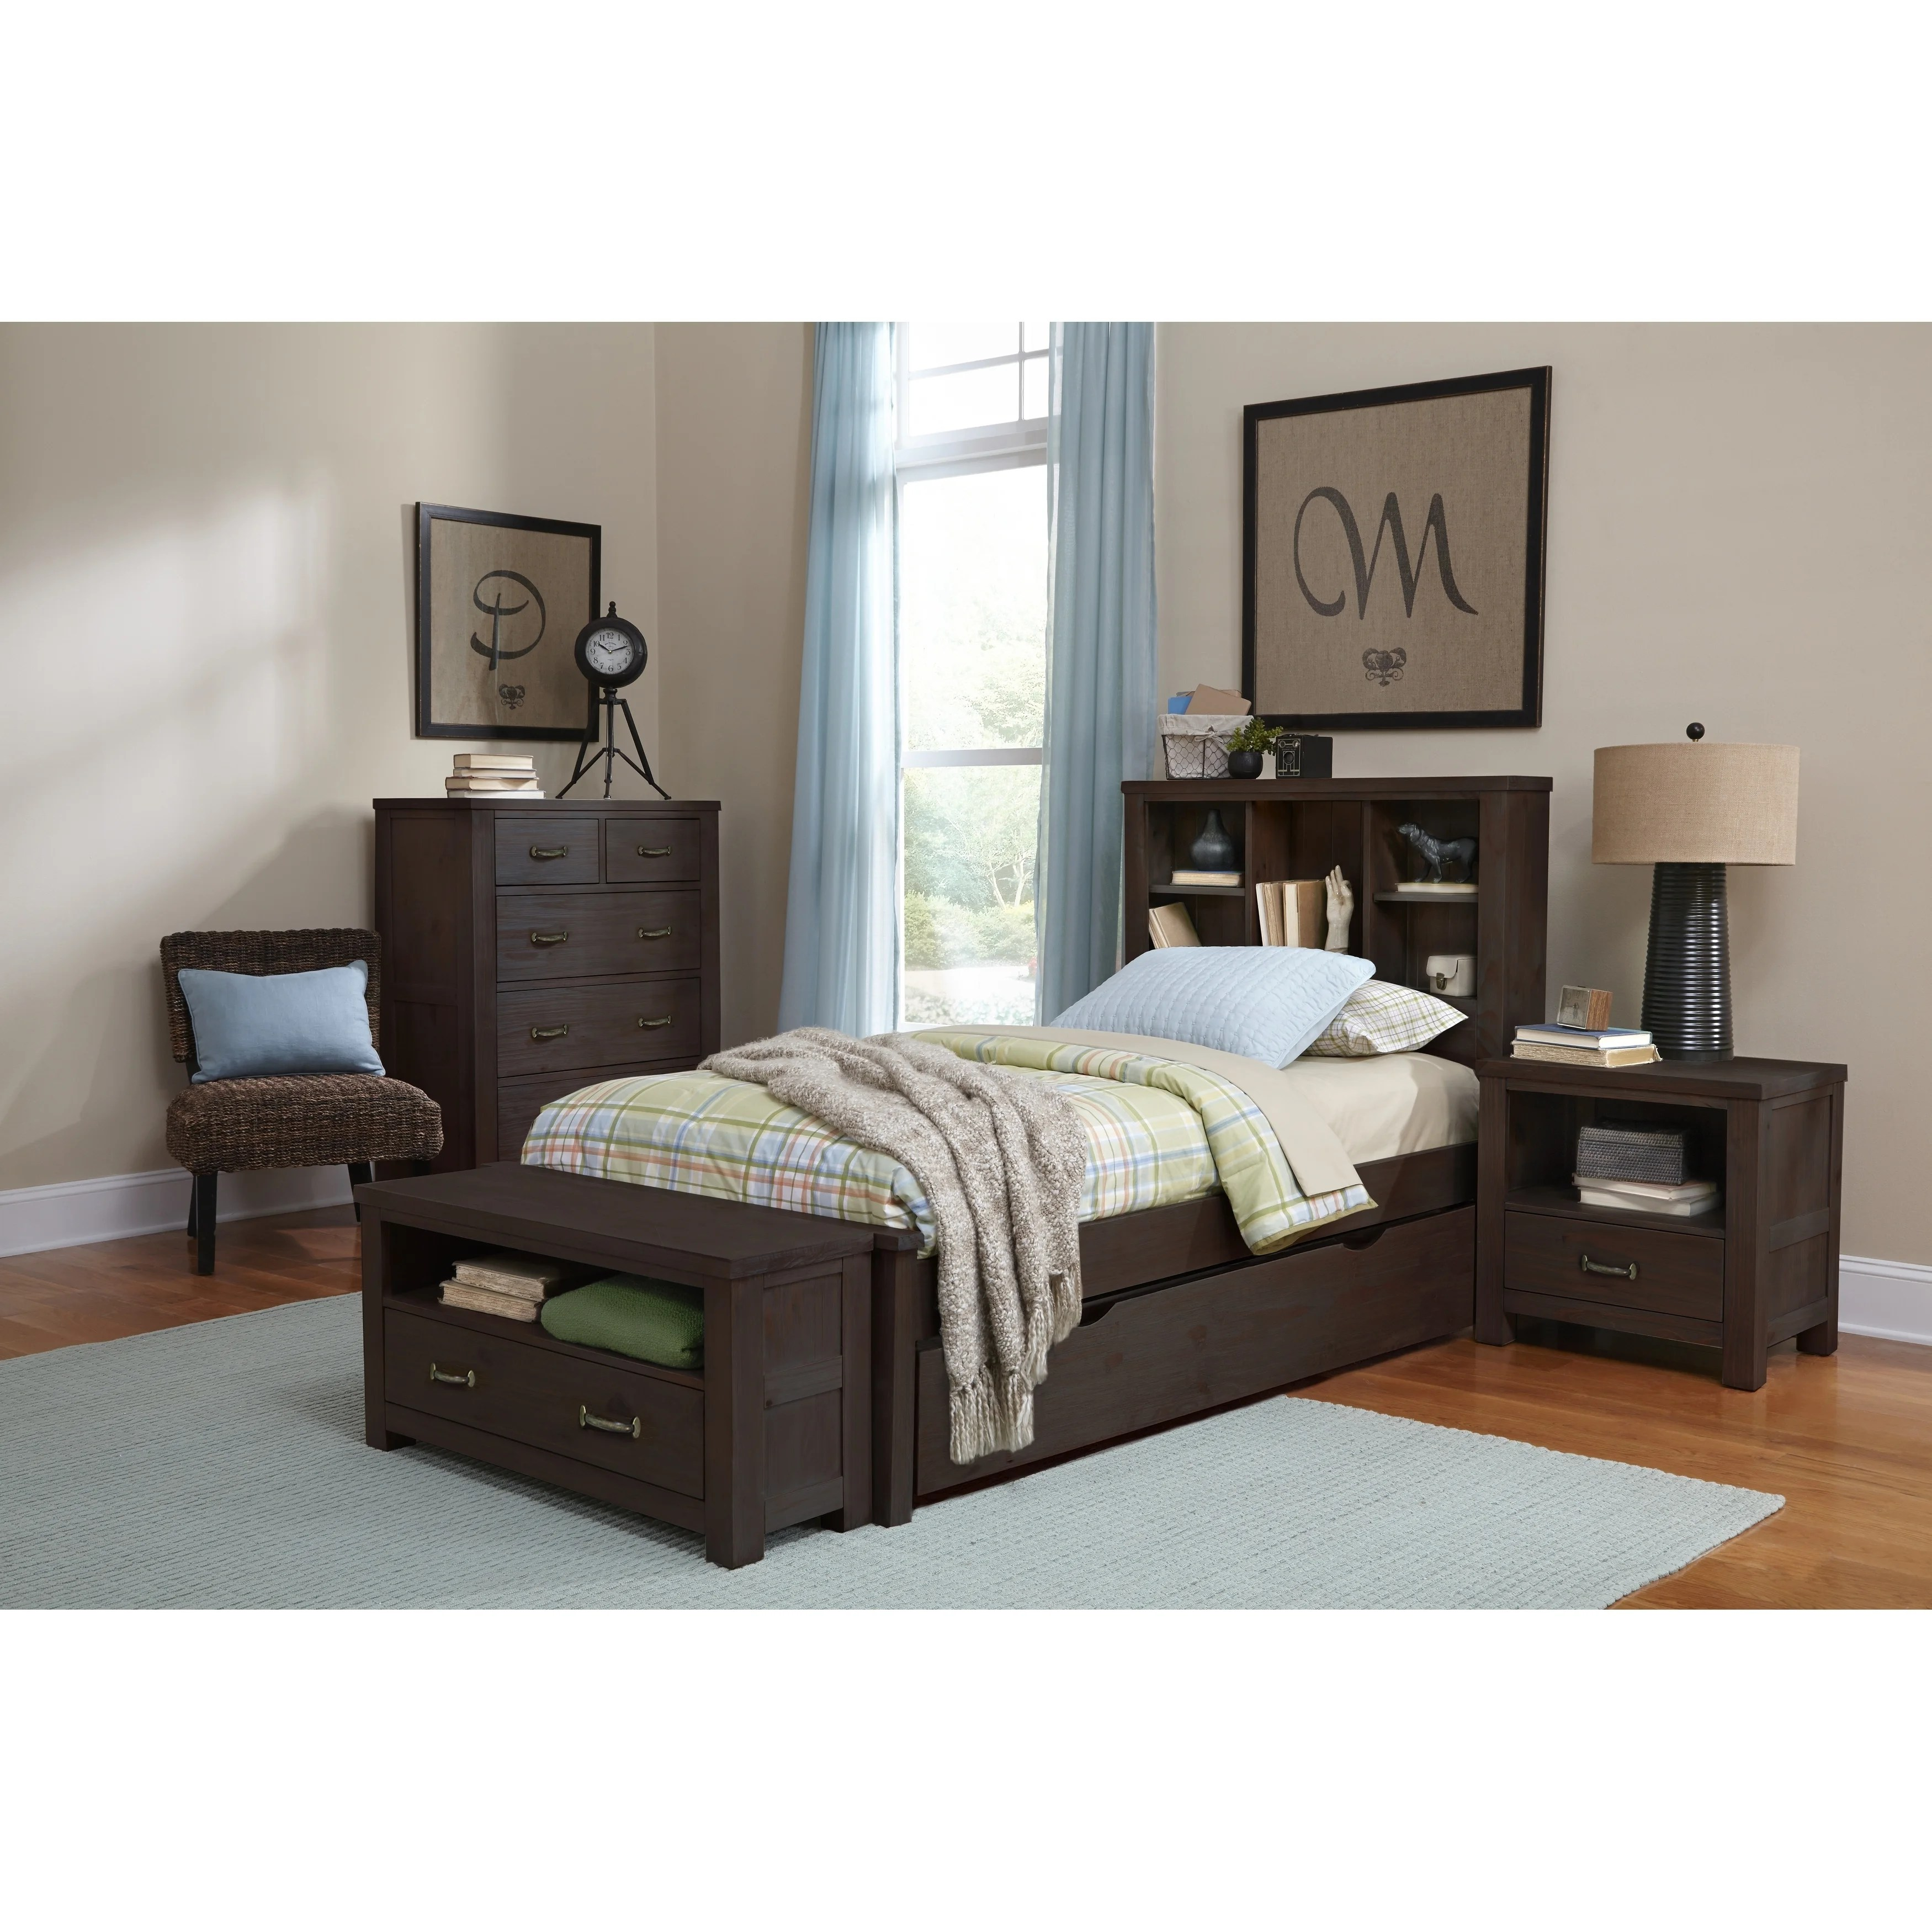 Bookcase Bed Details About Hillsdale Highlands Twin Bookcase Bed With Trundle Espresso